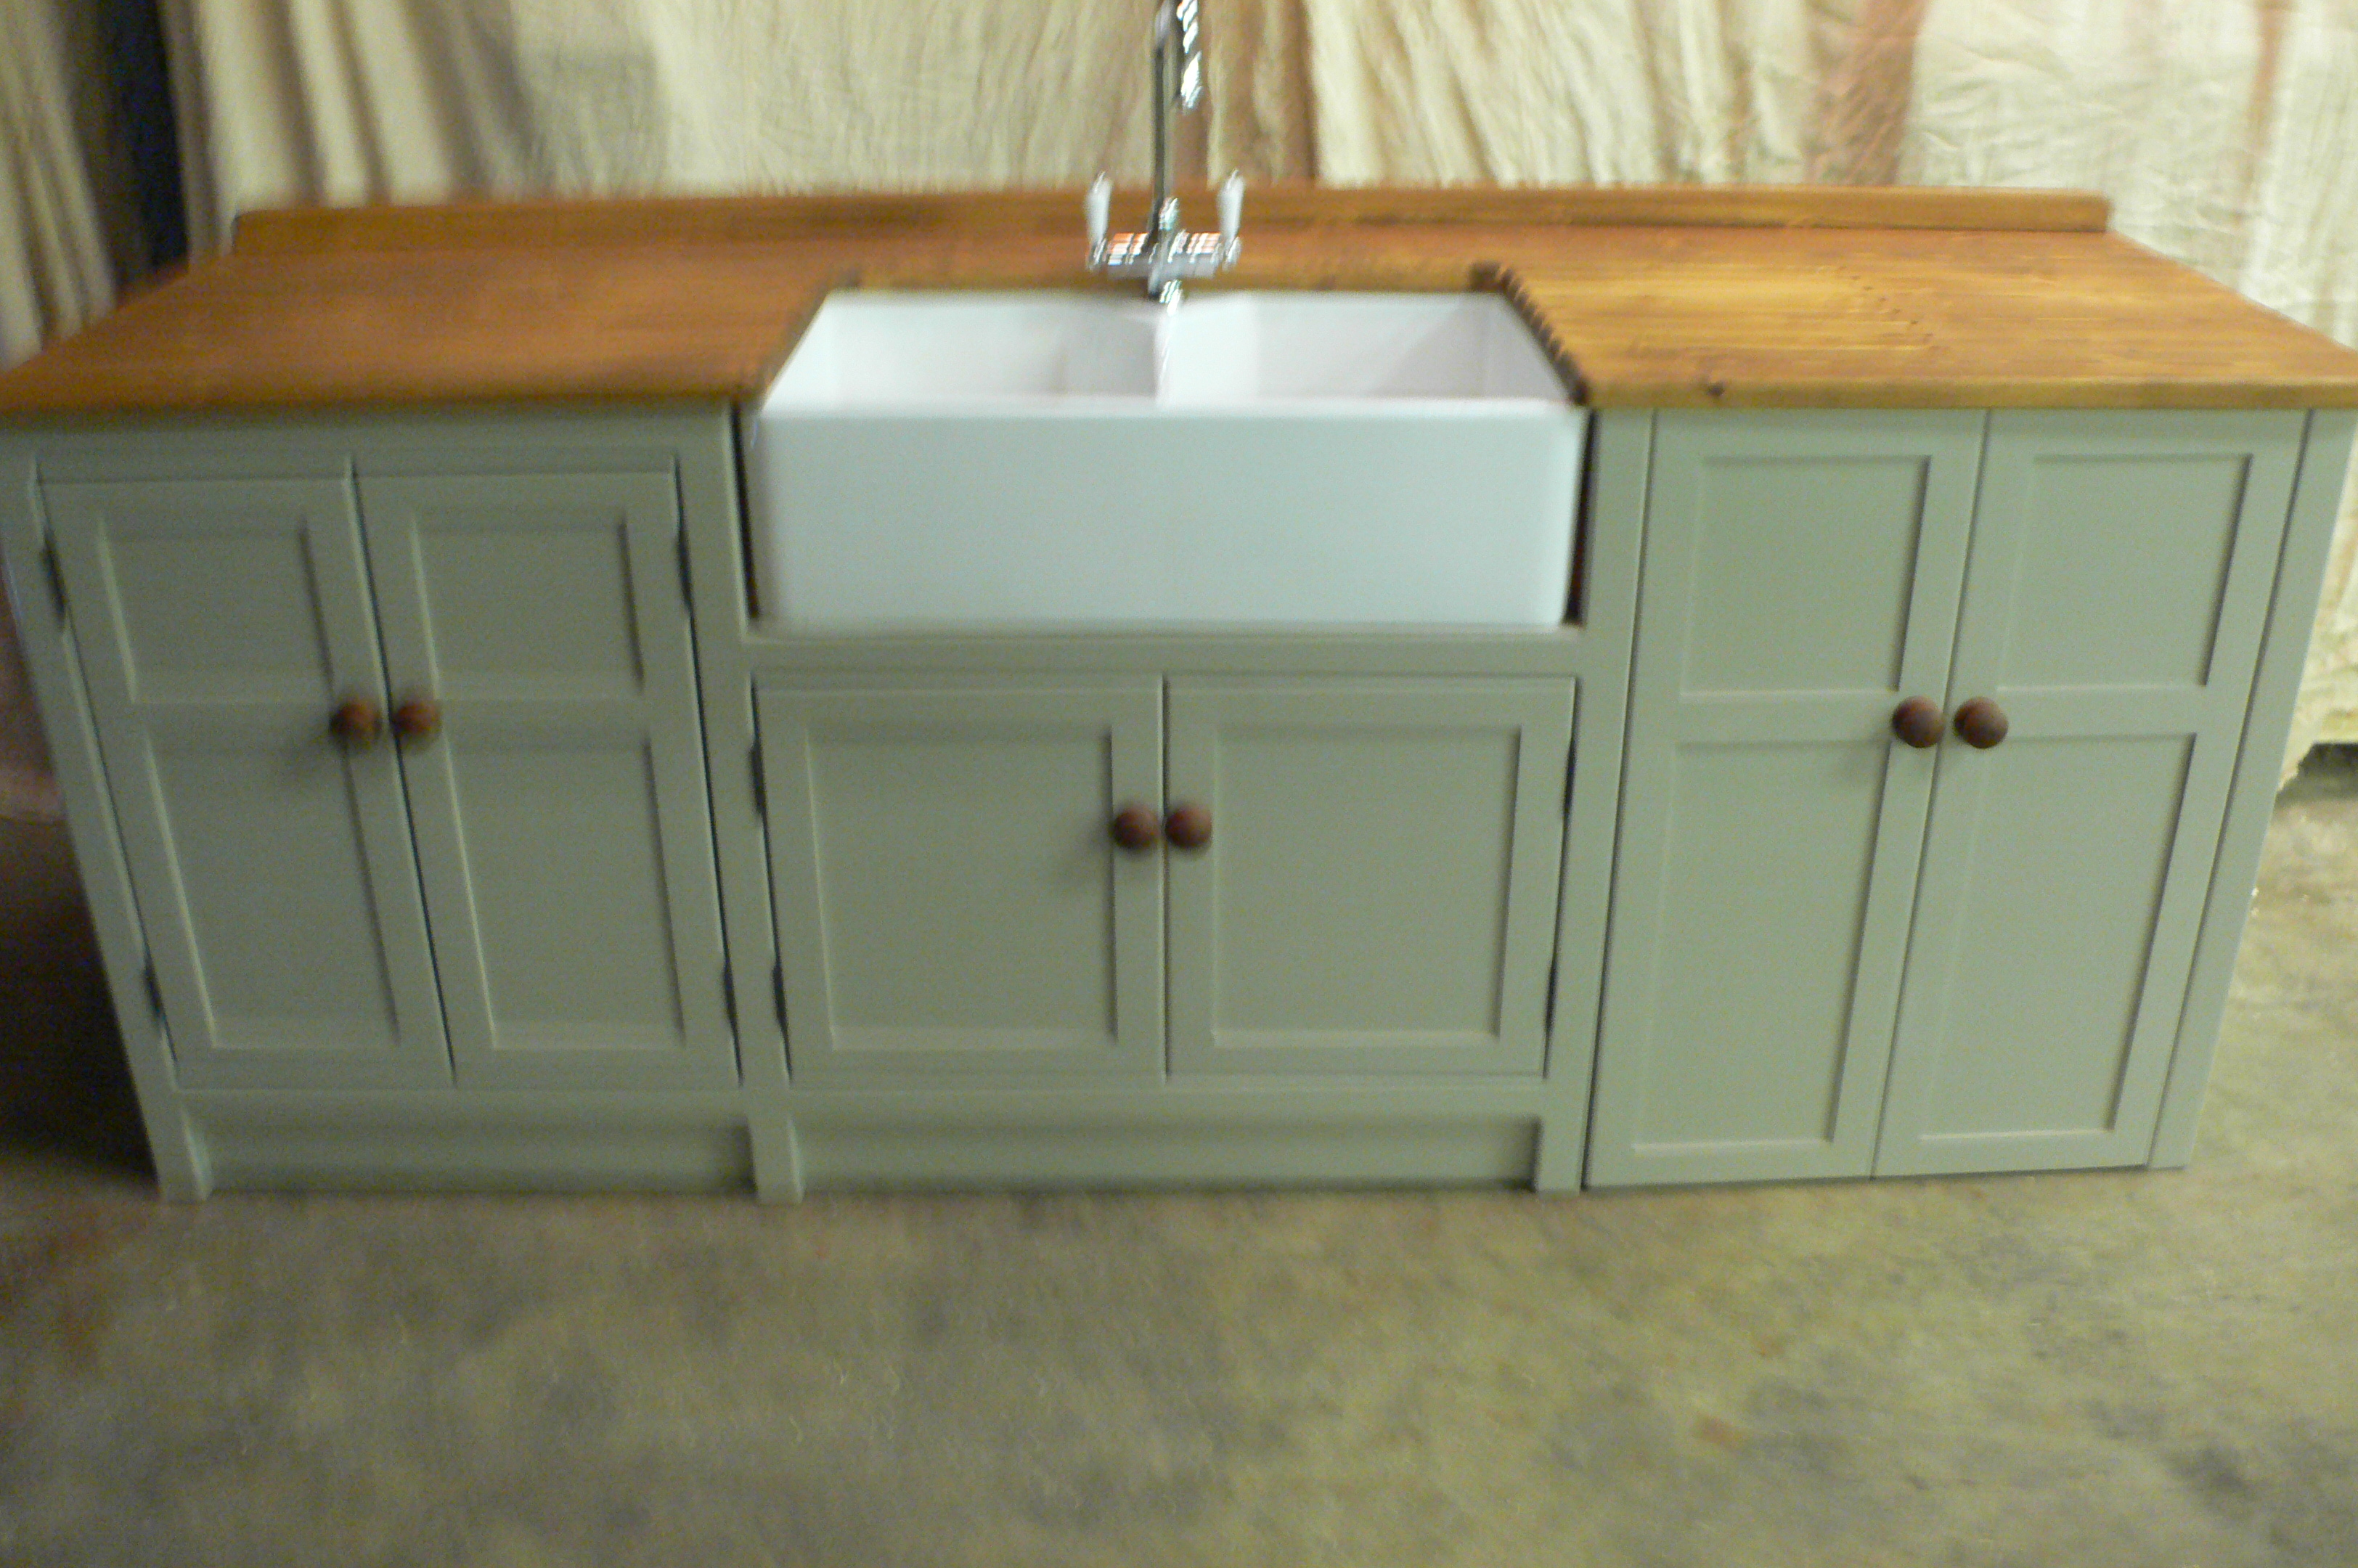 Double Butler Sink and Appliance Unit - The Olive Branch ...